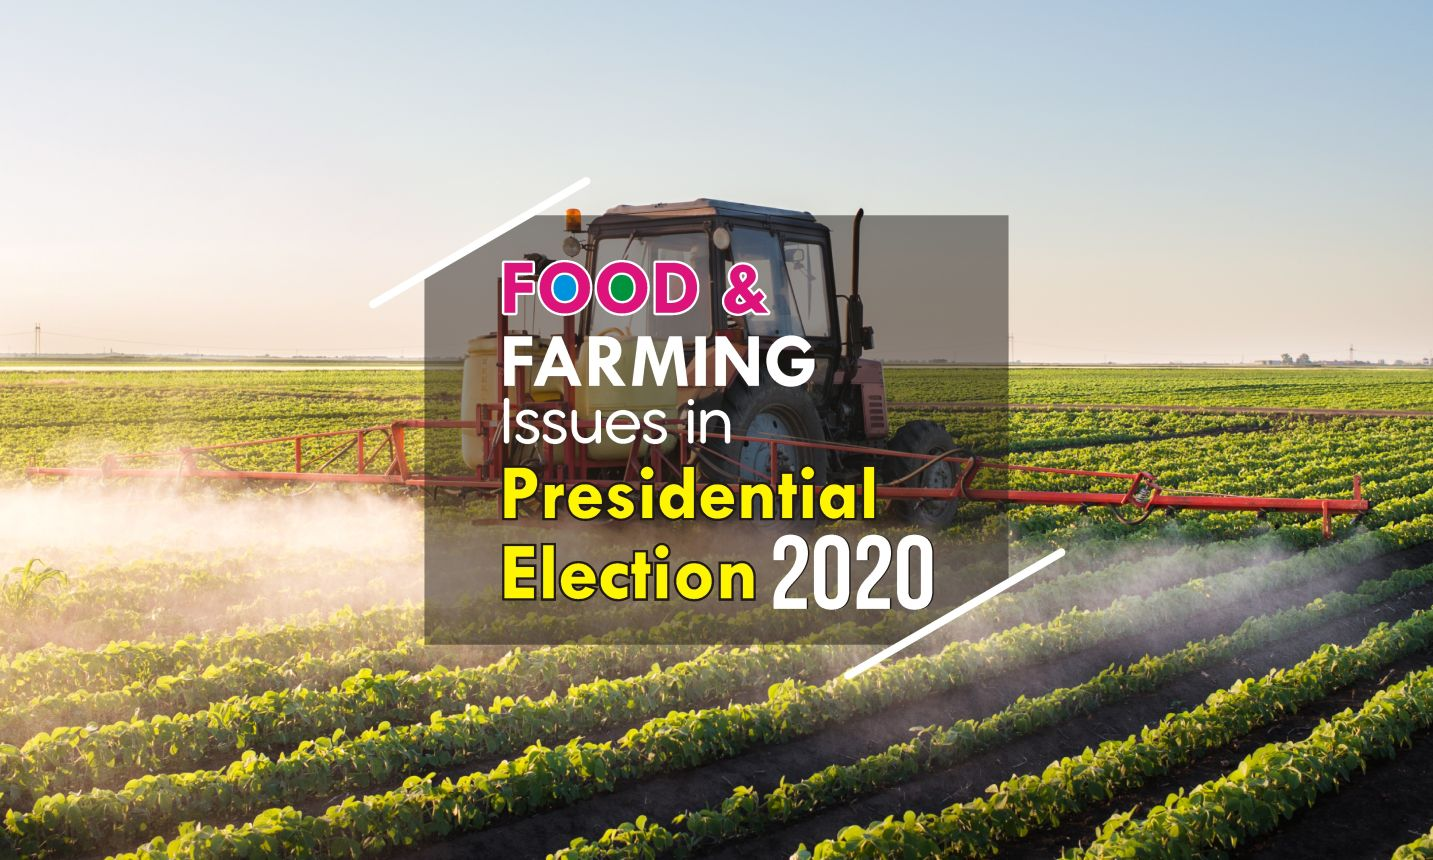 food_farming presidential election 2020